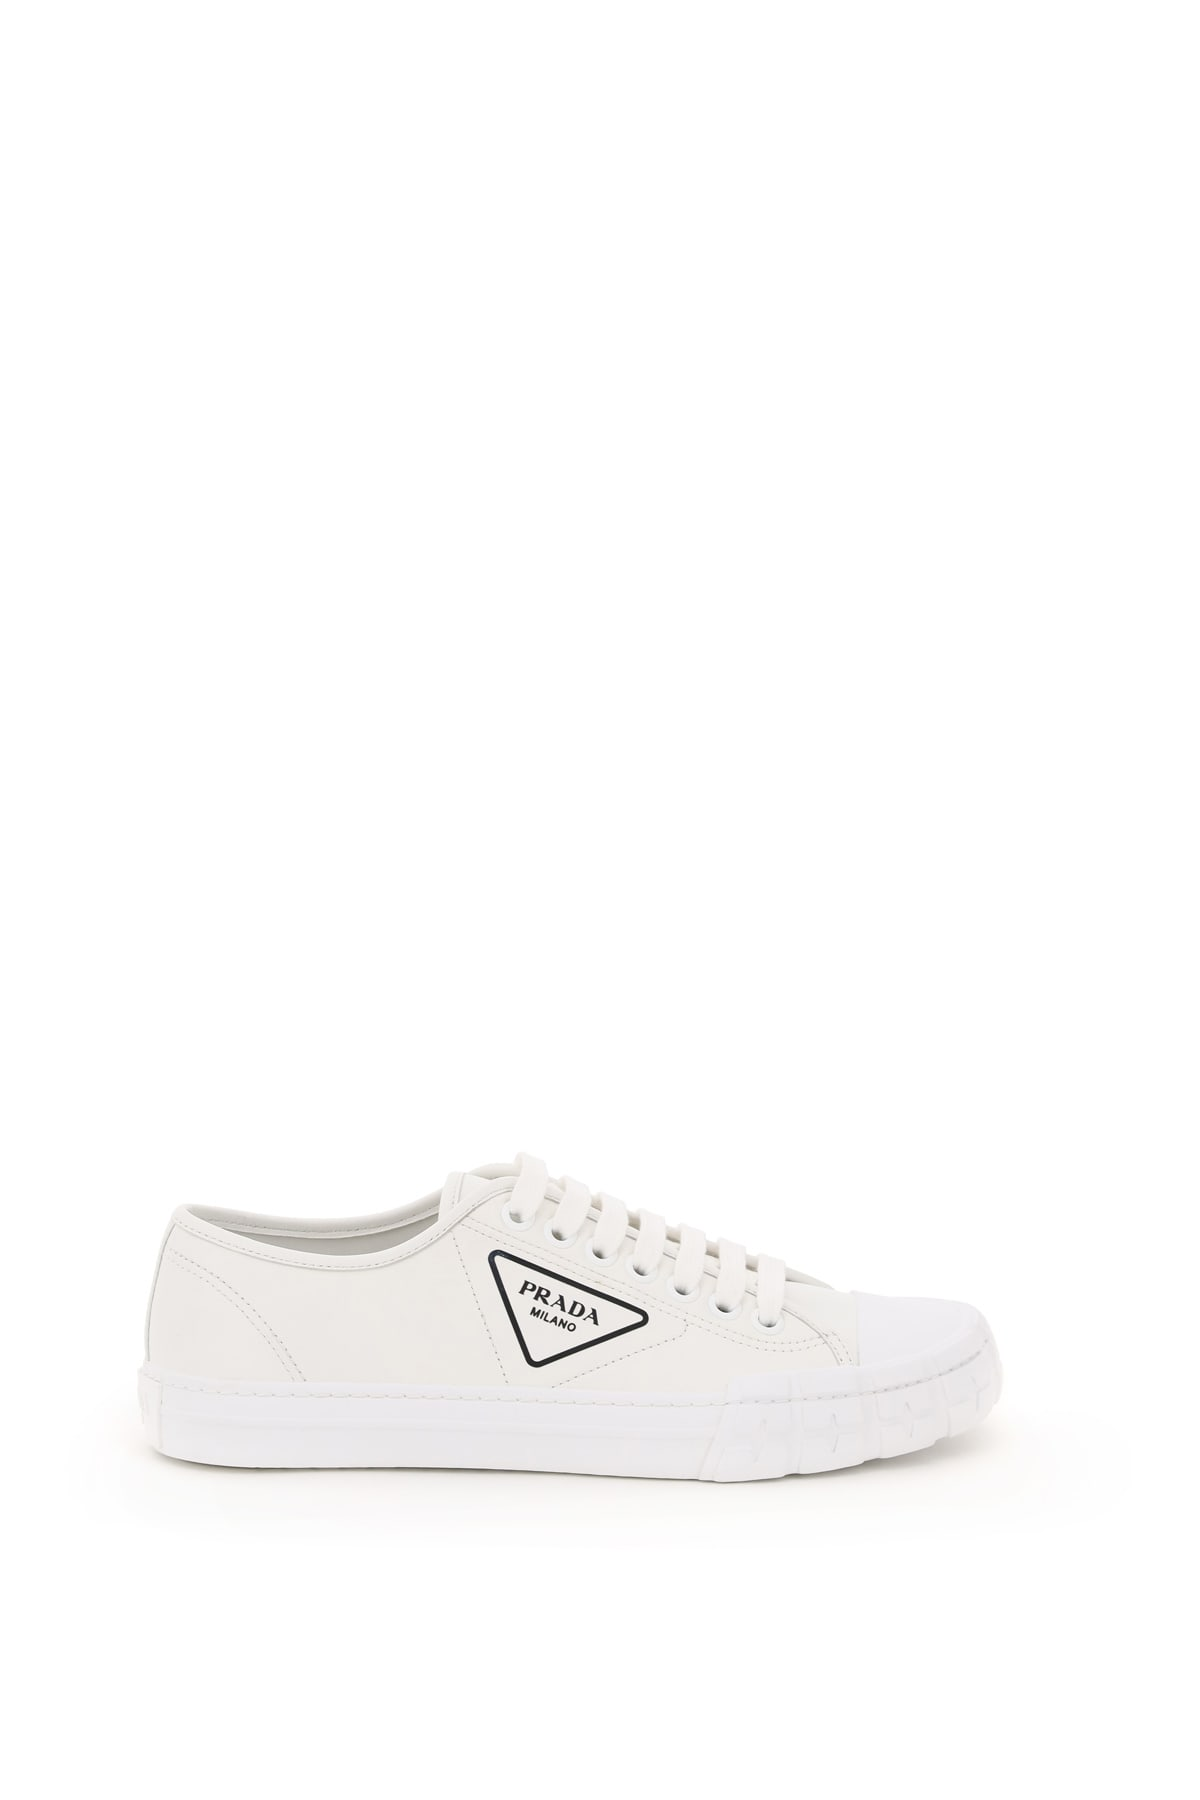 Prada NAPPA WHEEL SNEAKERS